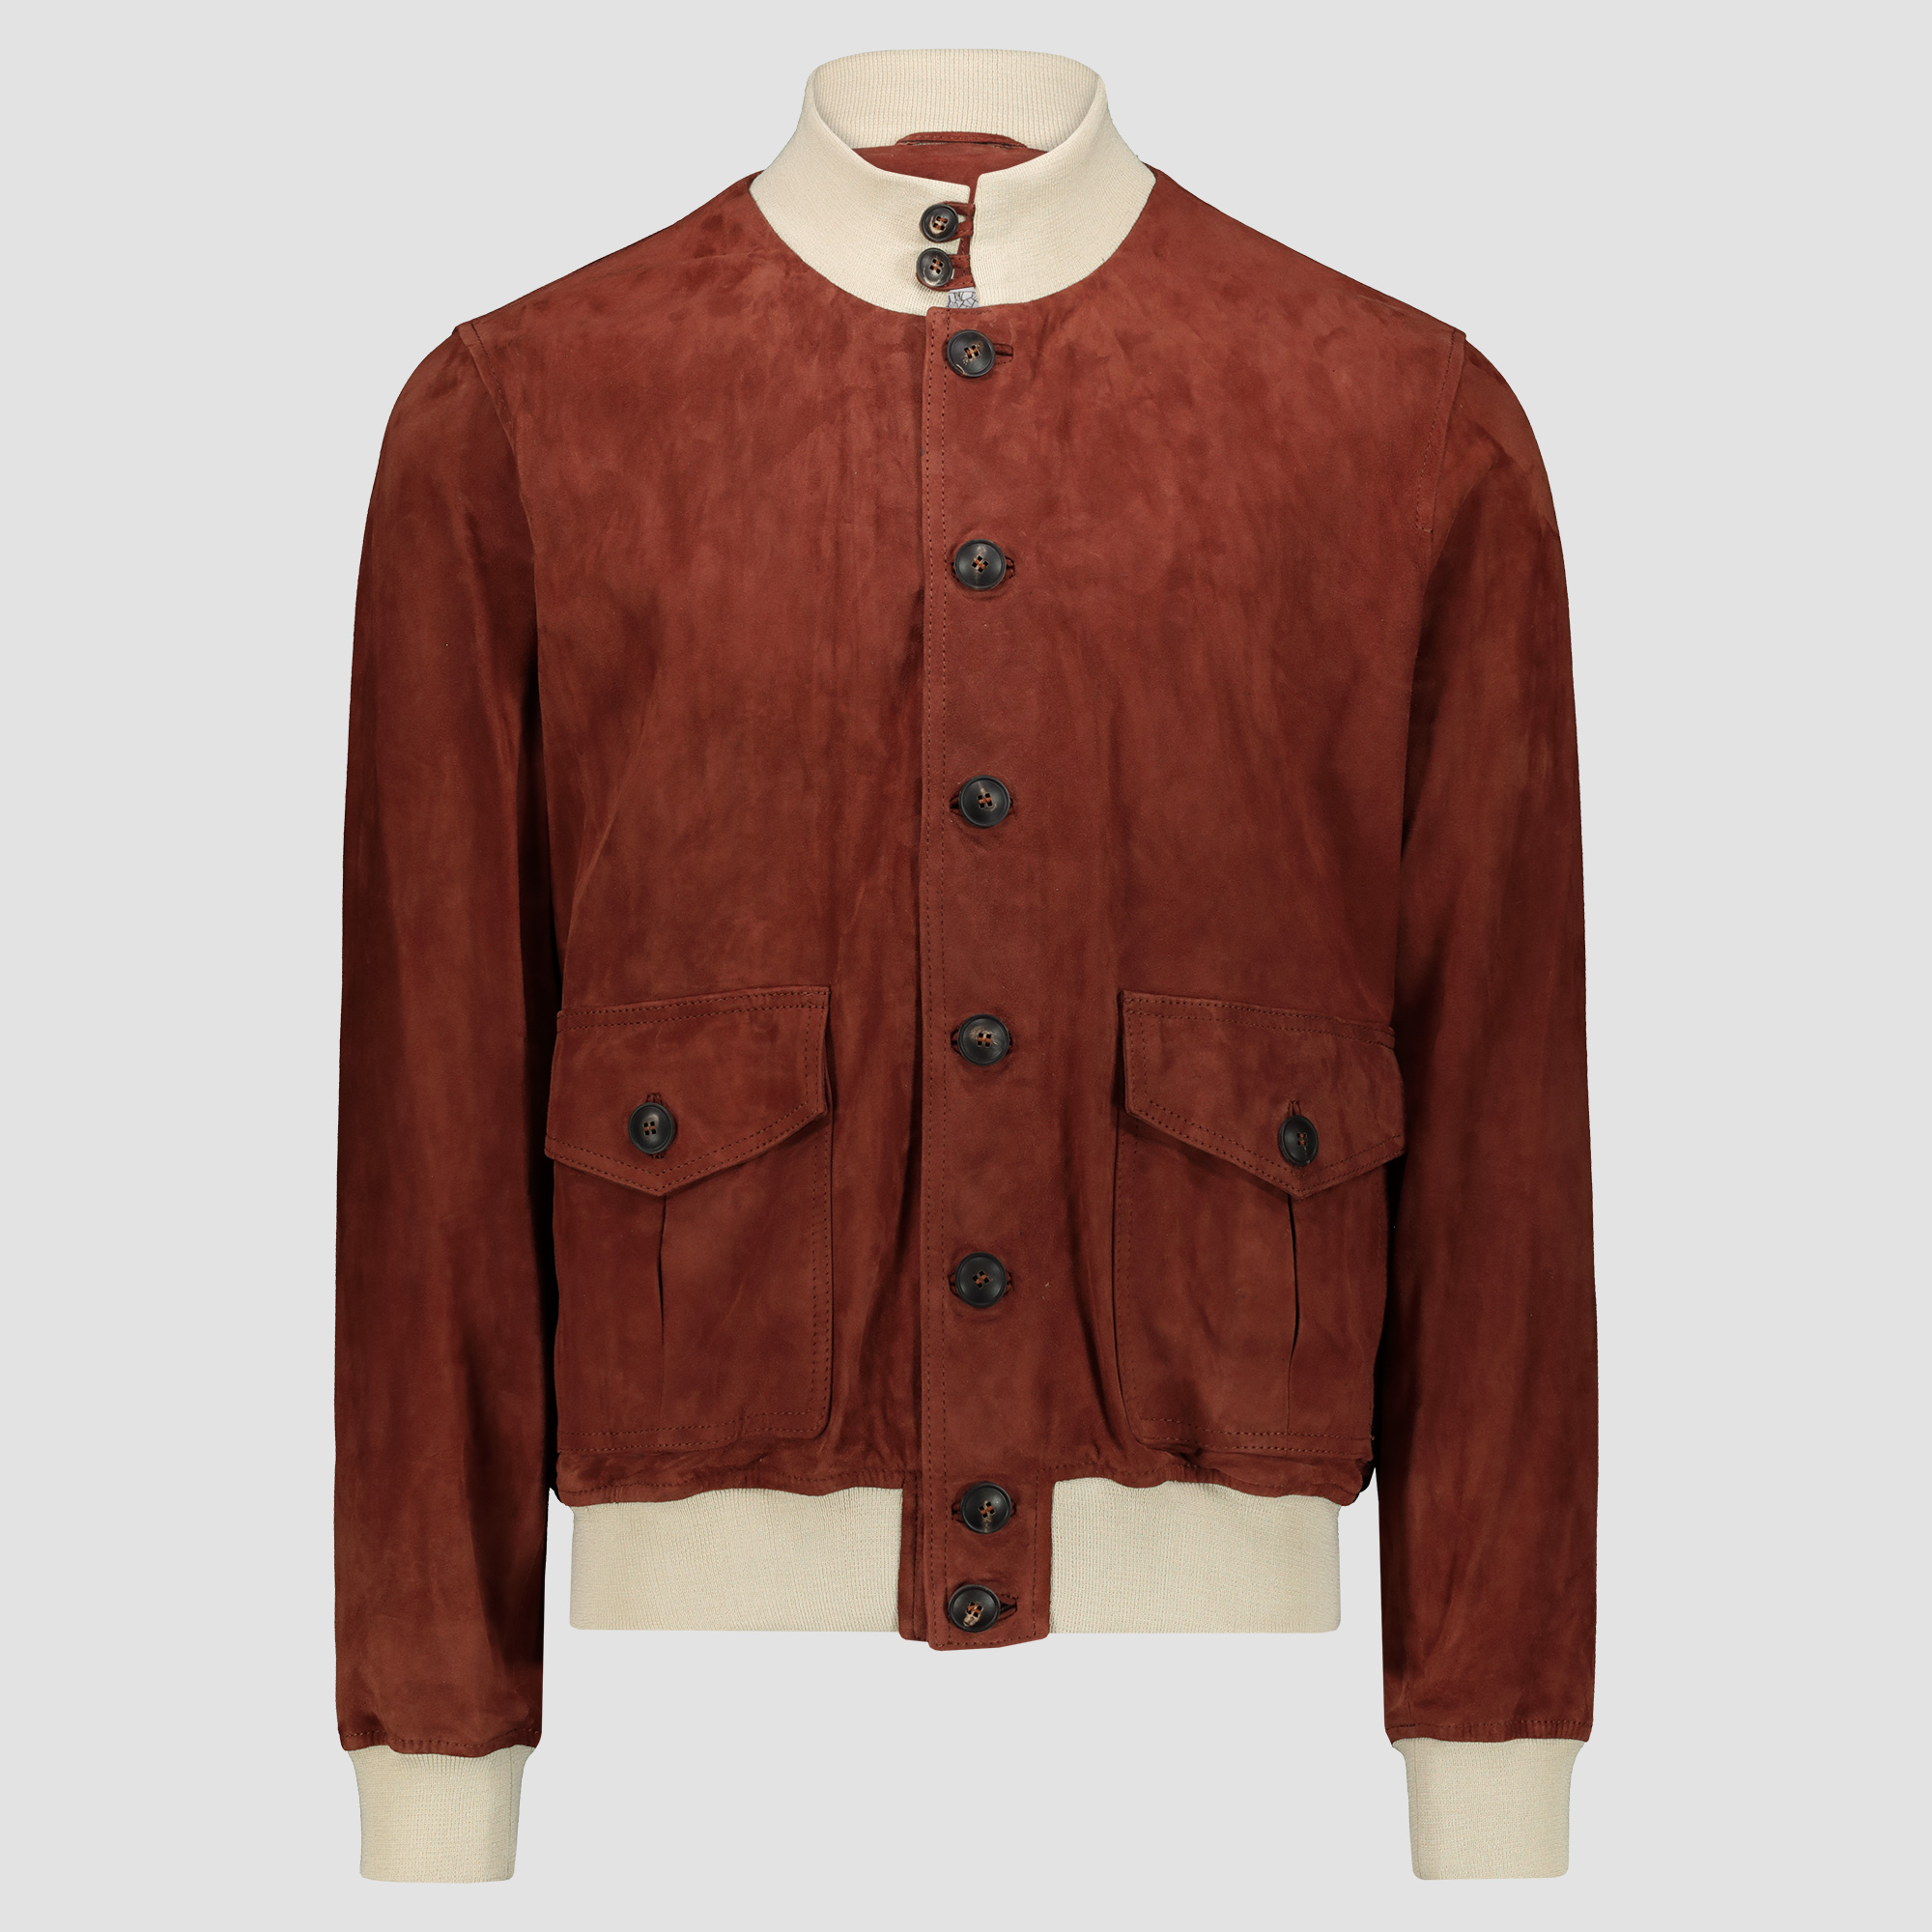 Brick suede & beige details Bomber Jacket A1 Cary